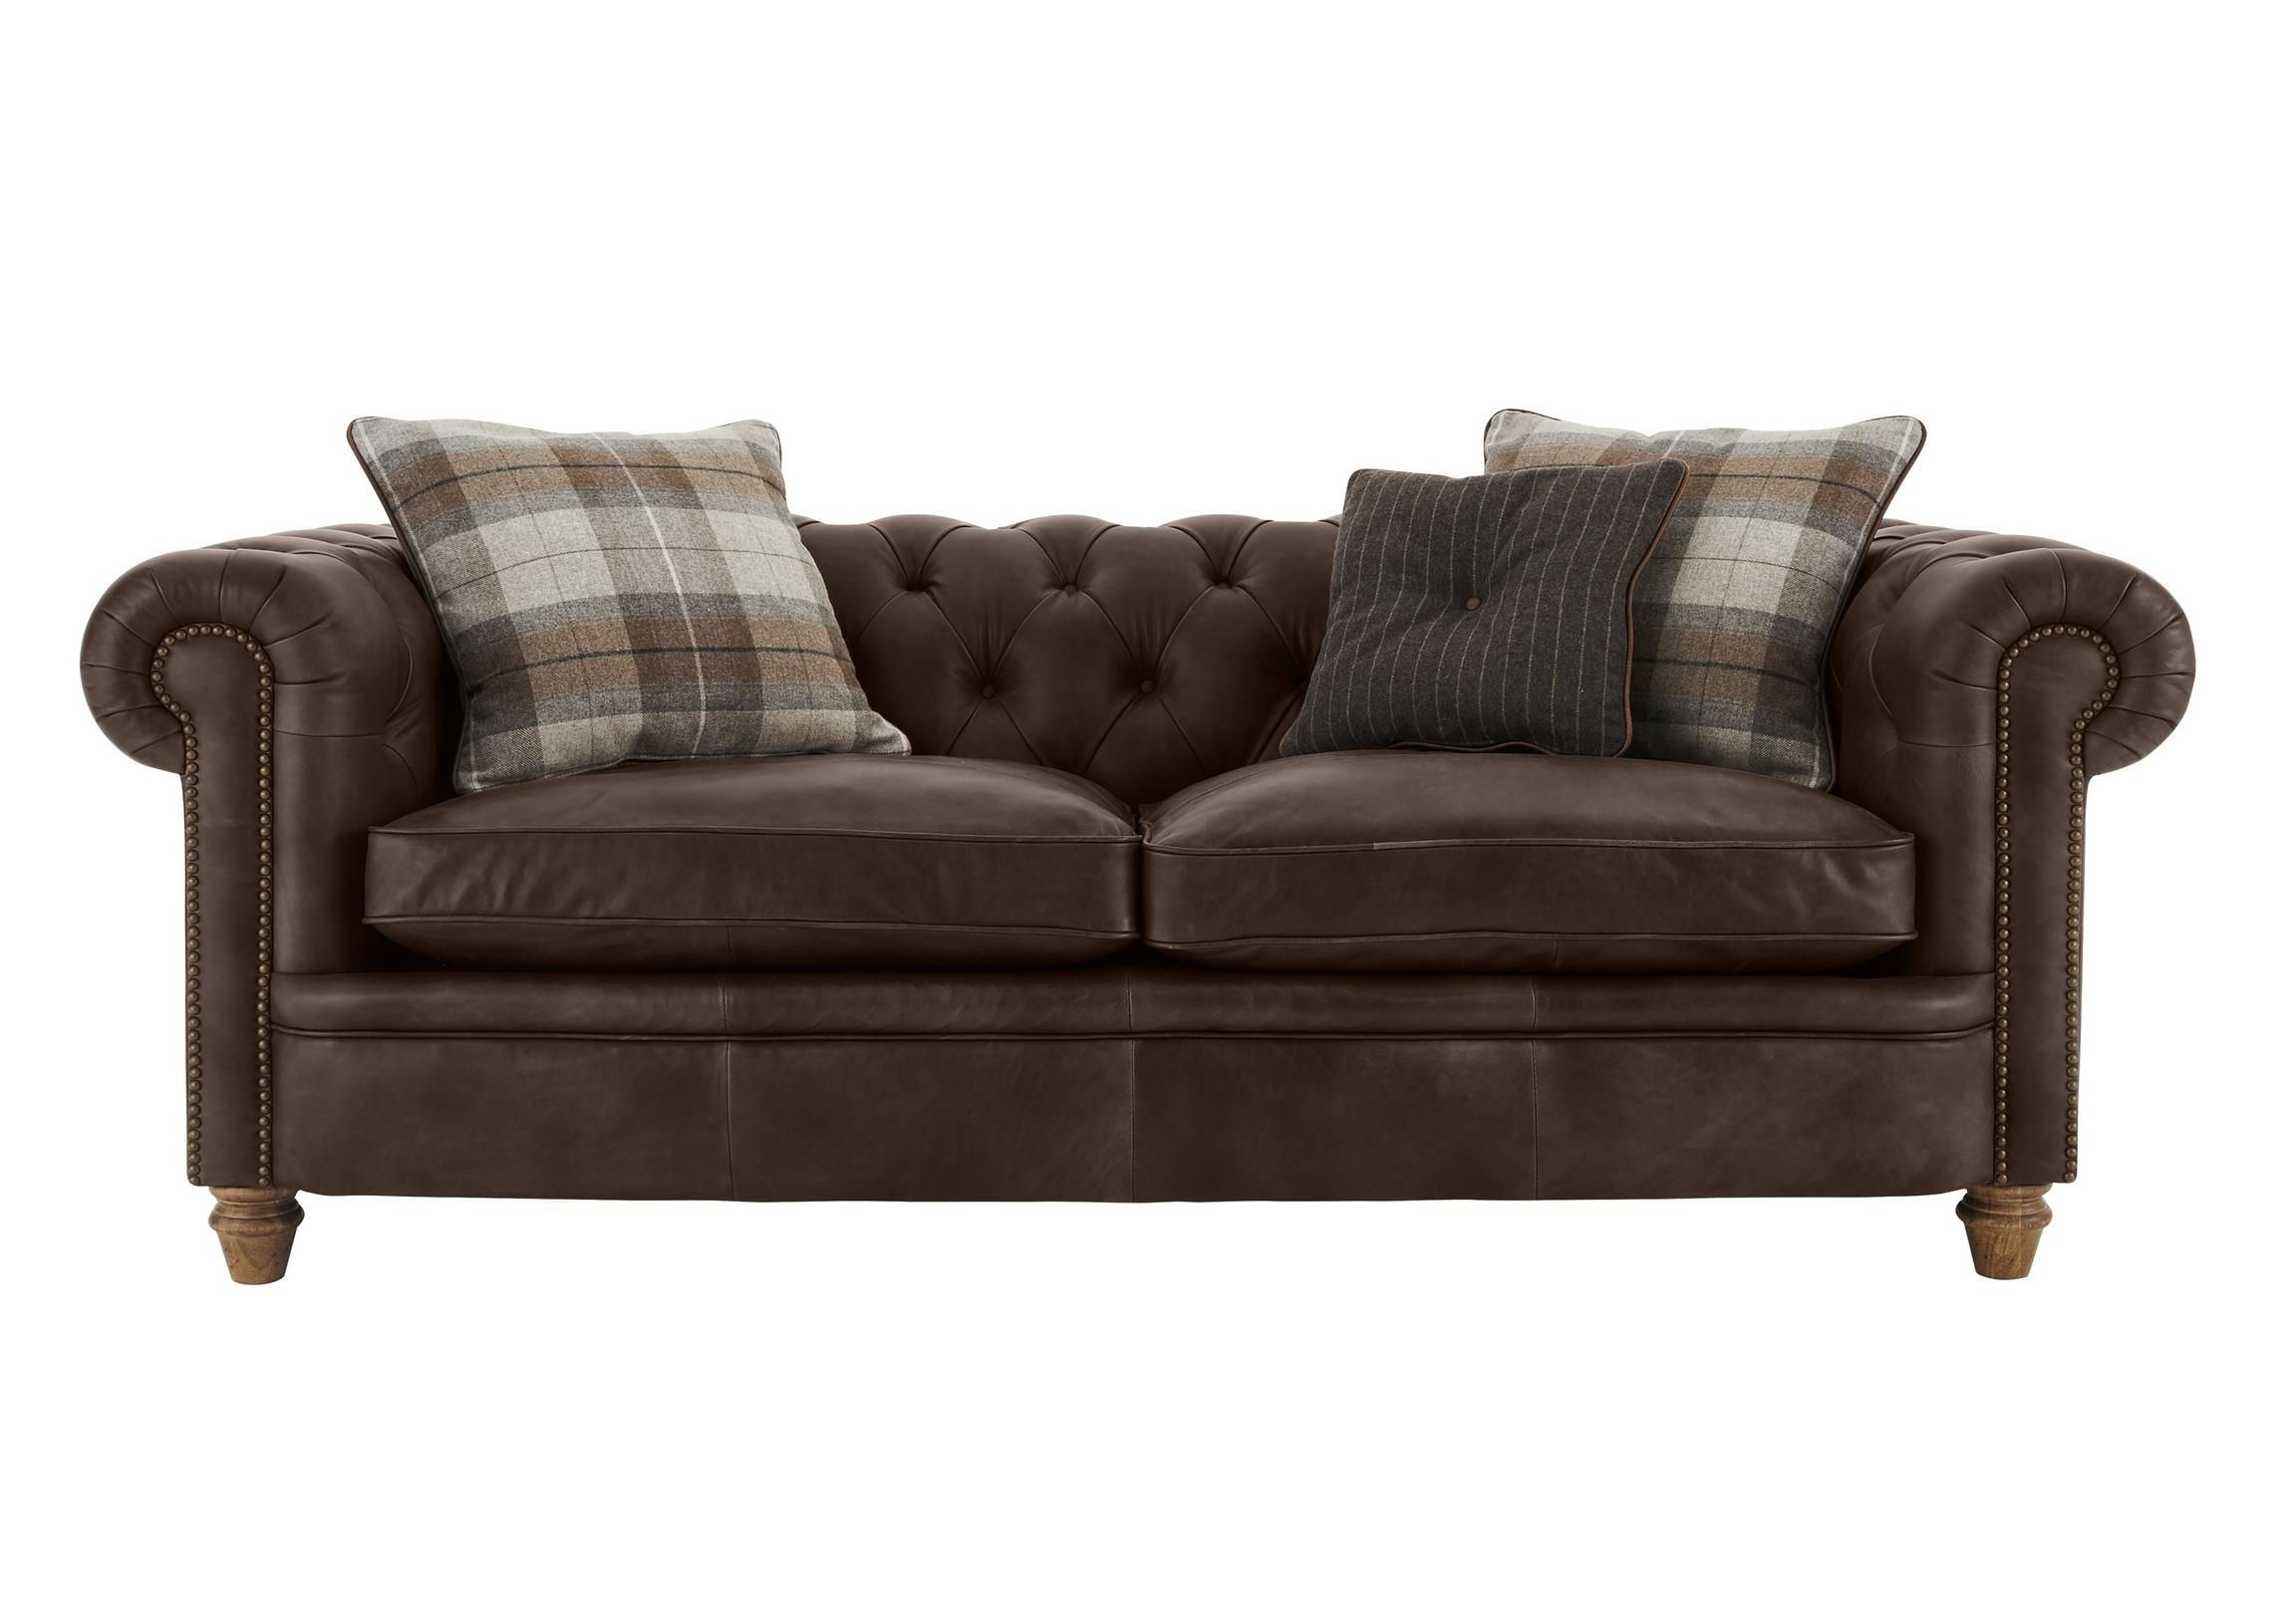 Discover the New England Newport 2 Seater Leather Sofa It offers